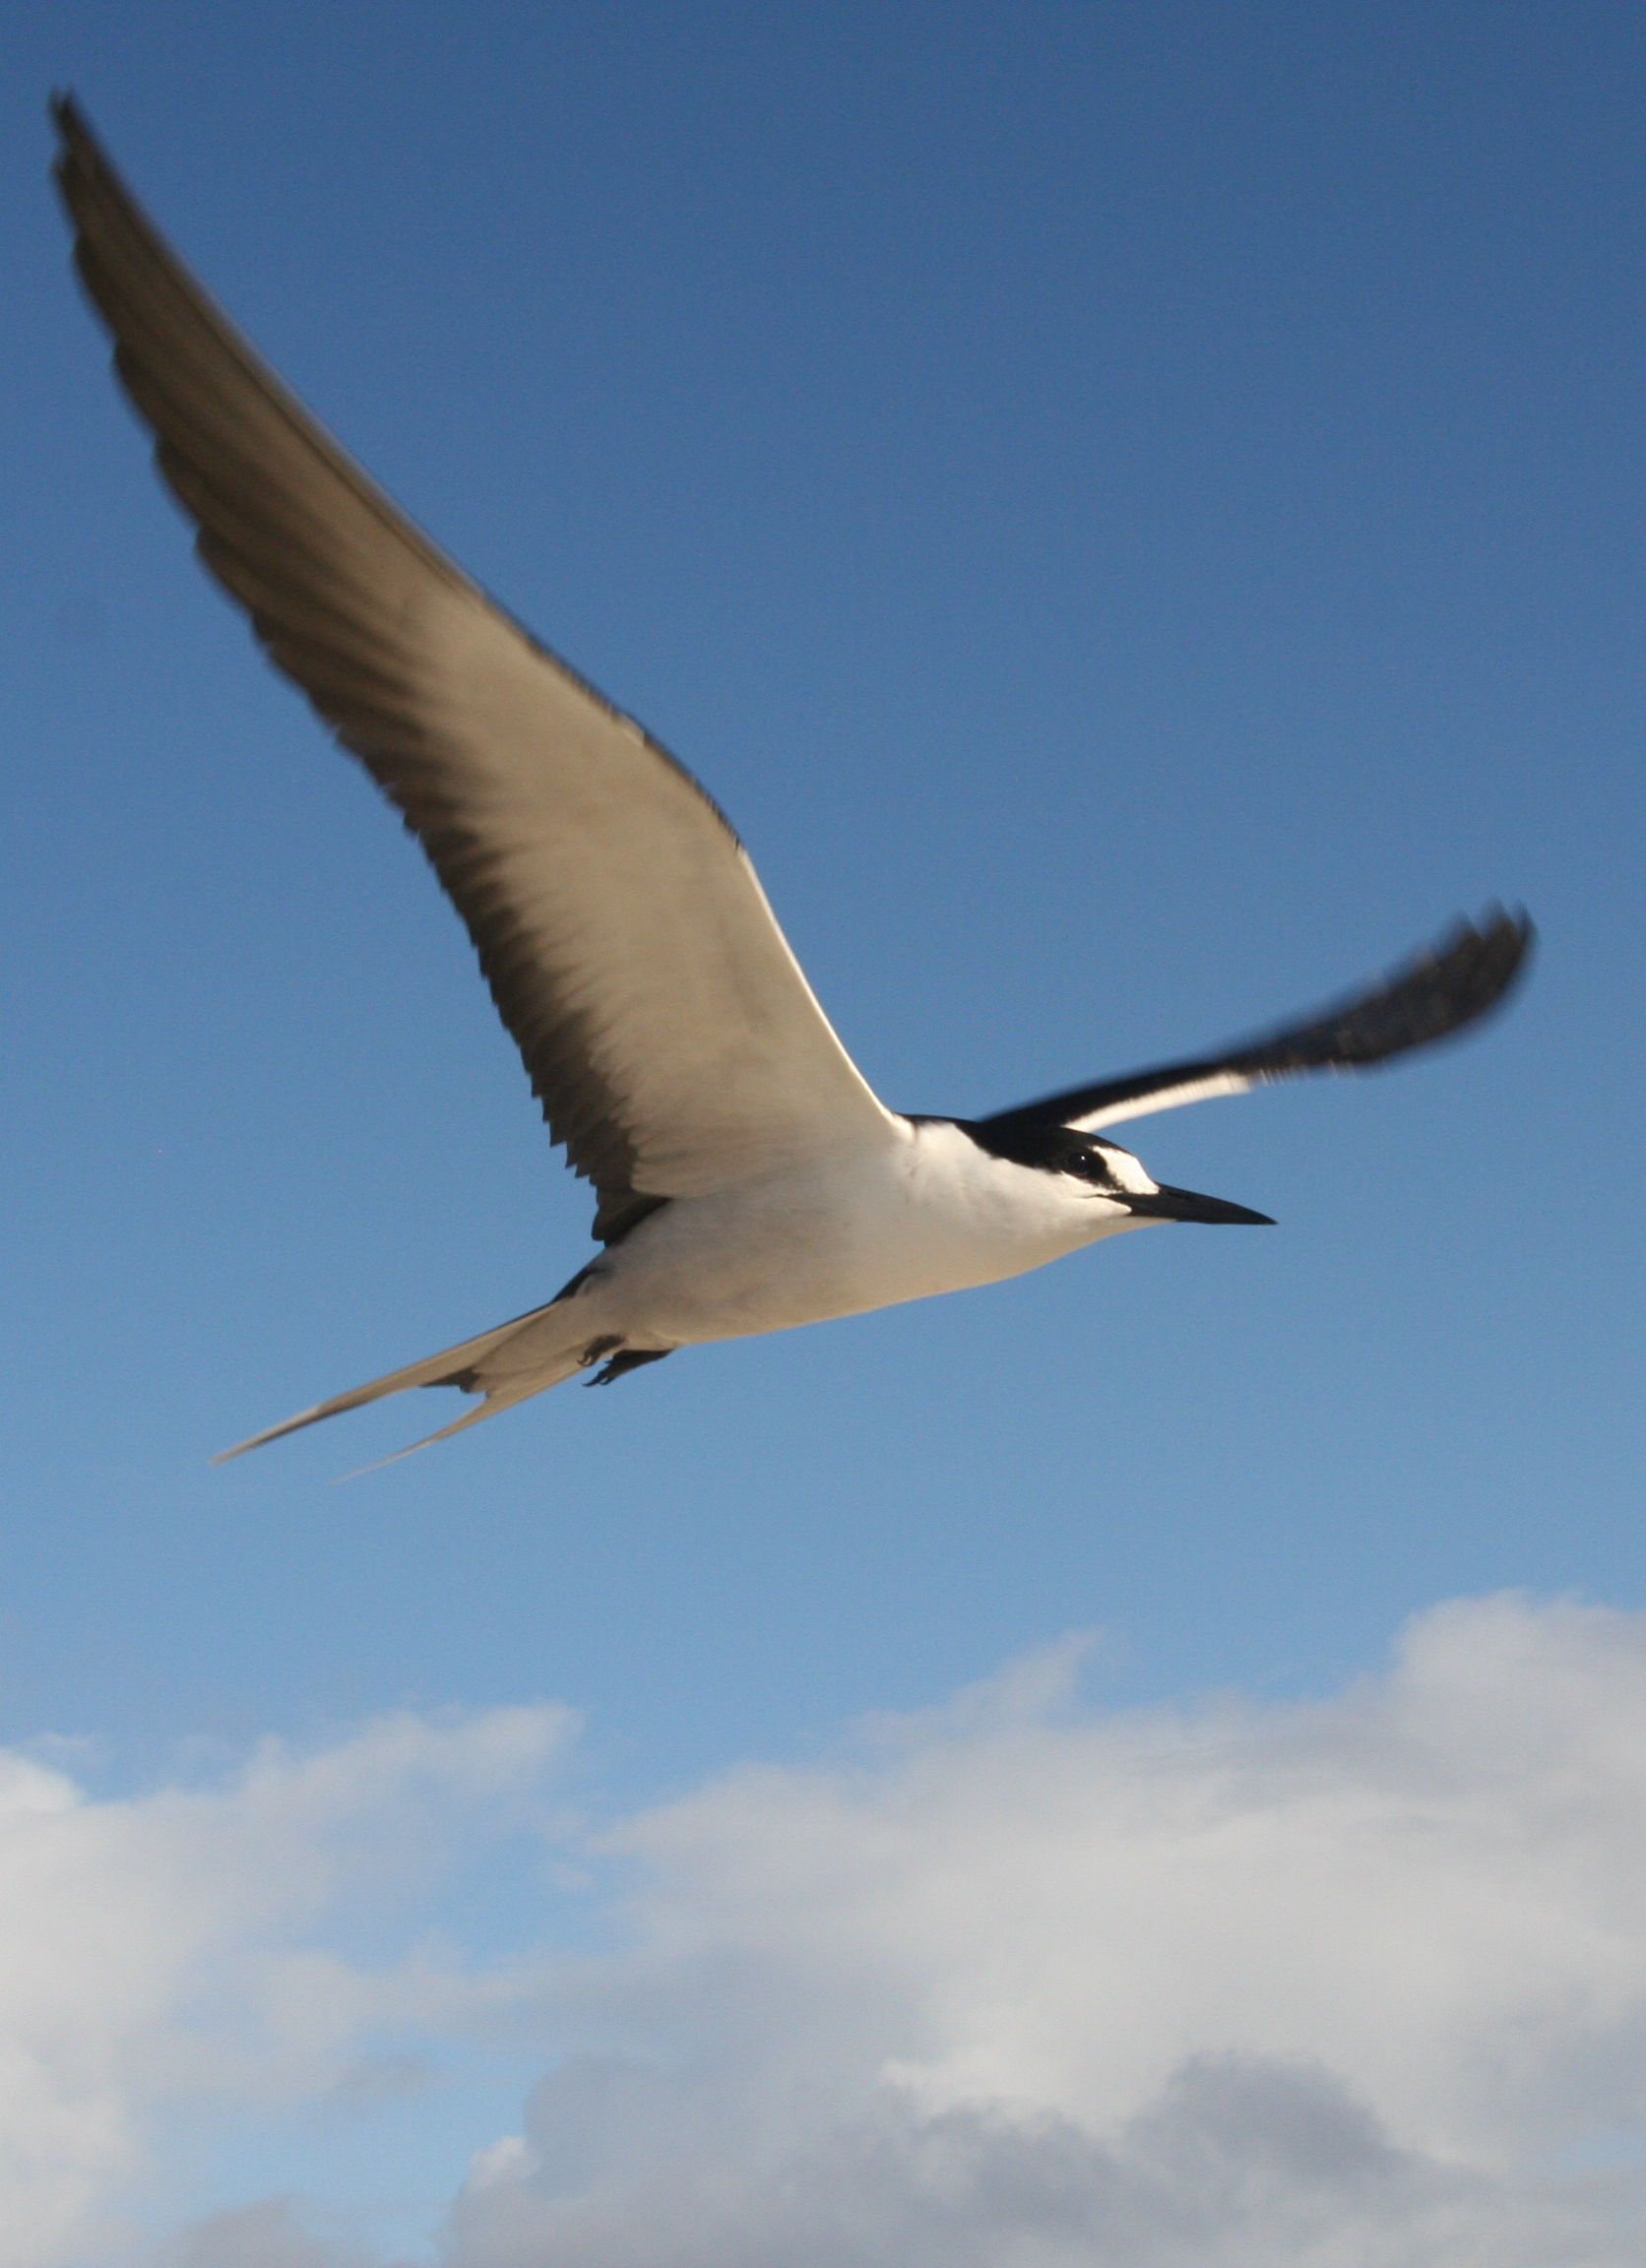 Slide Show Of Some Of My Bird Photos >> Seabird Wikipedia